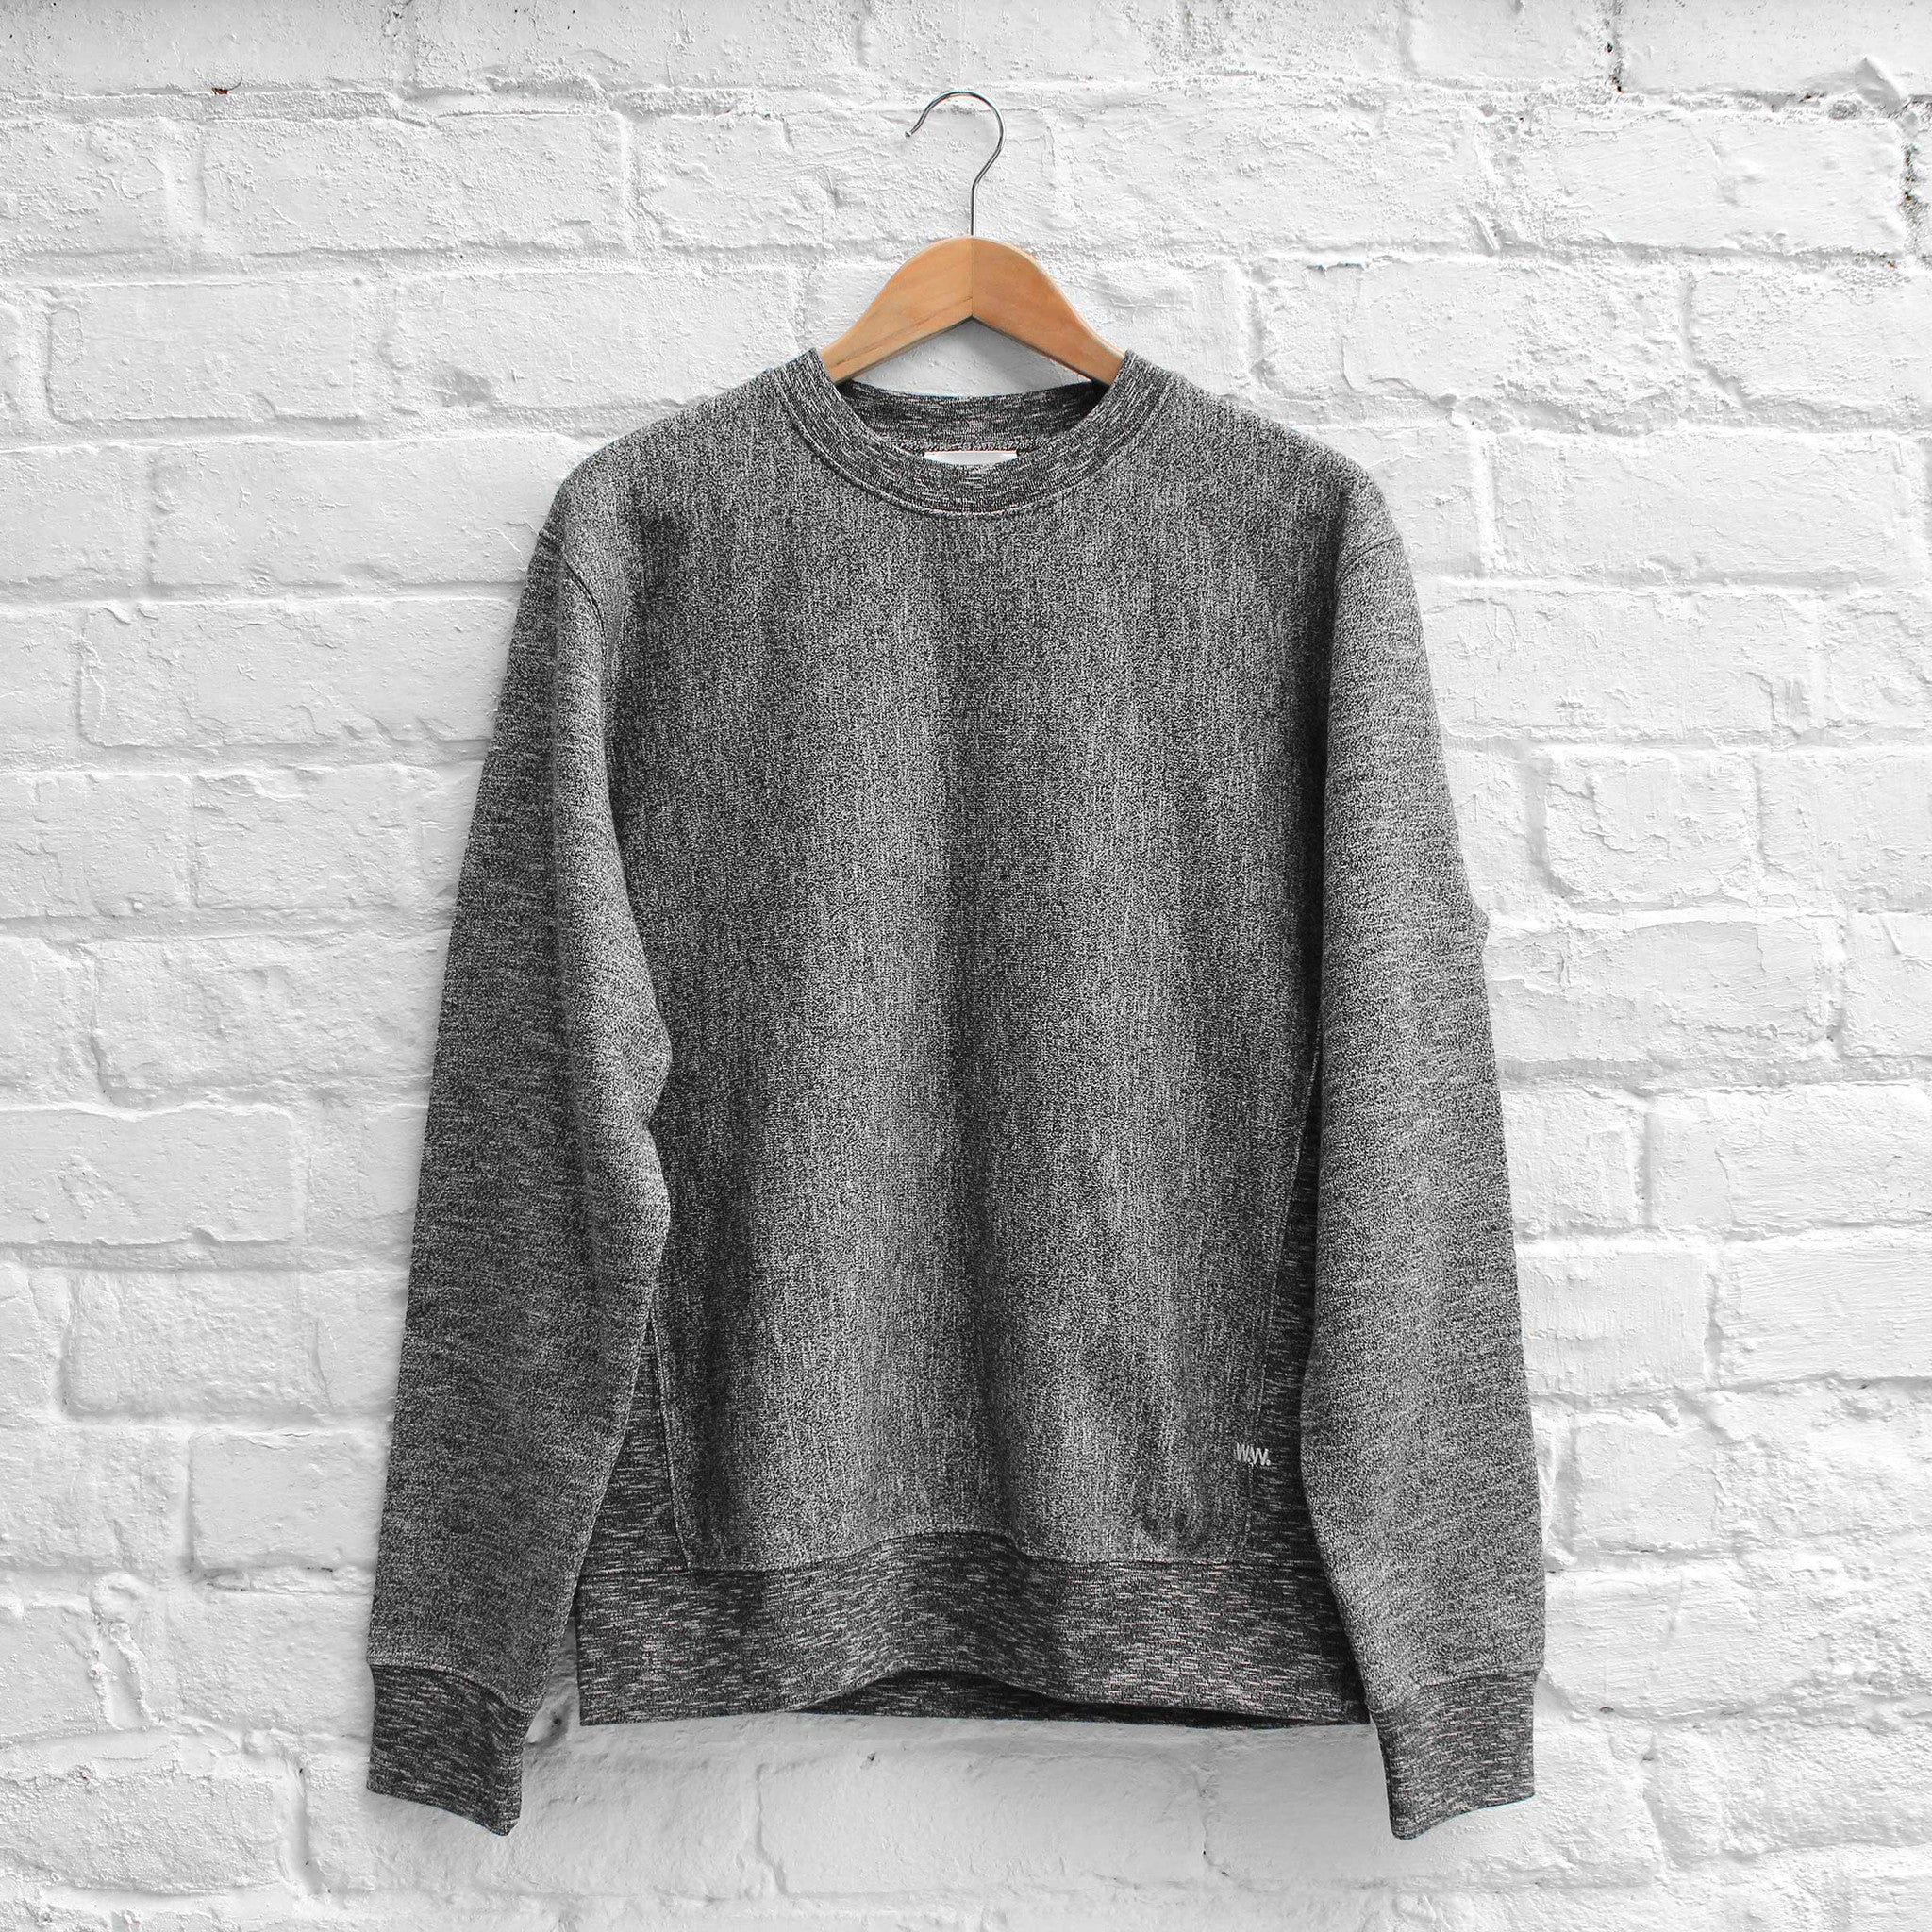 Wood Wood Larry Sweatshirt Black Melange